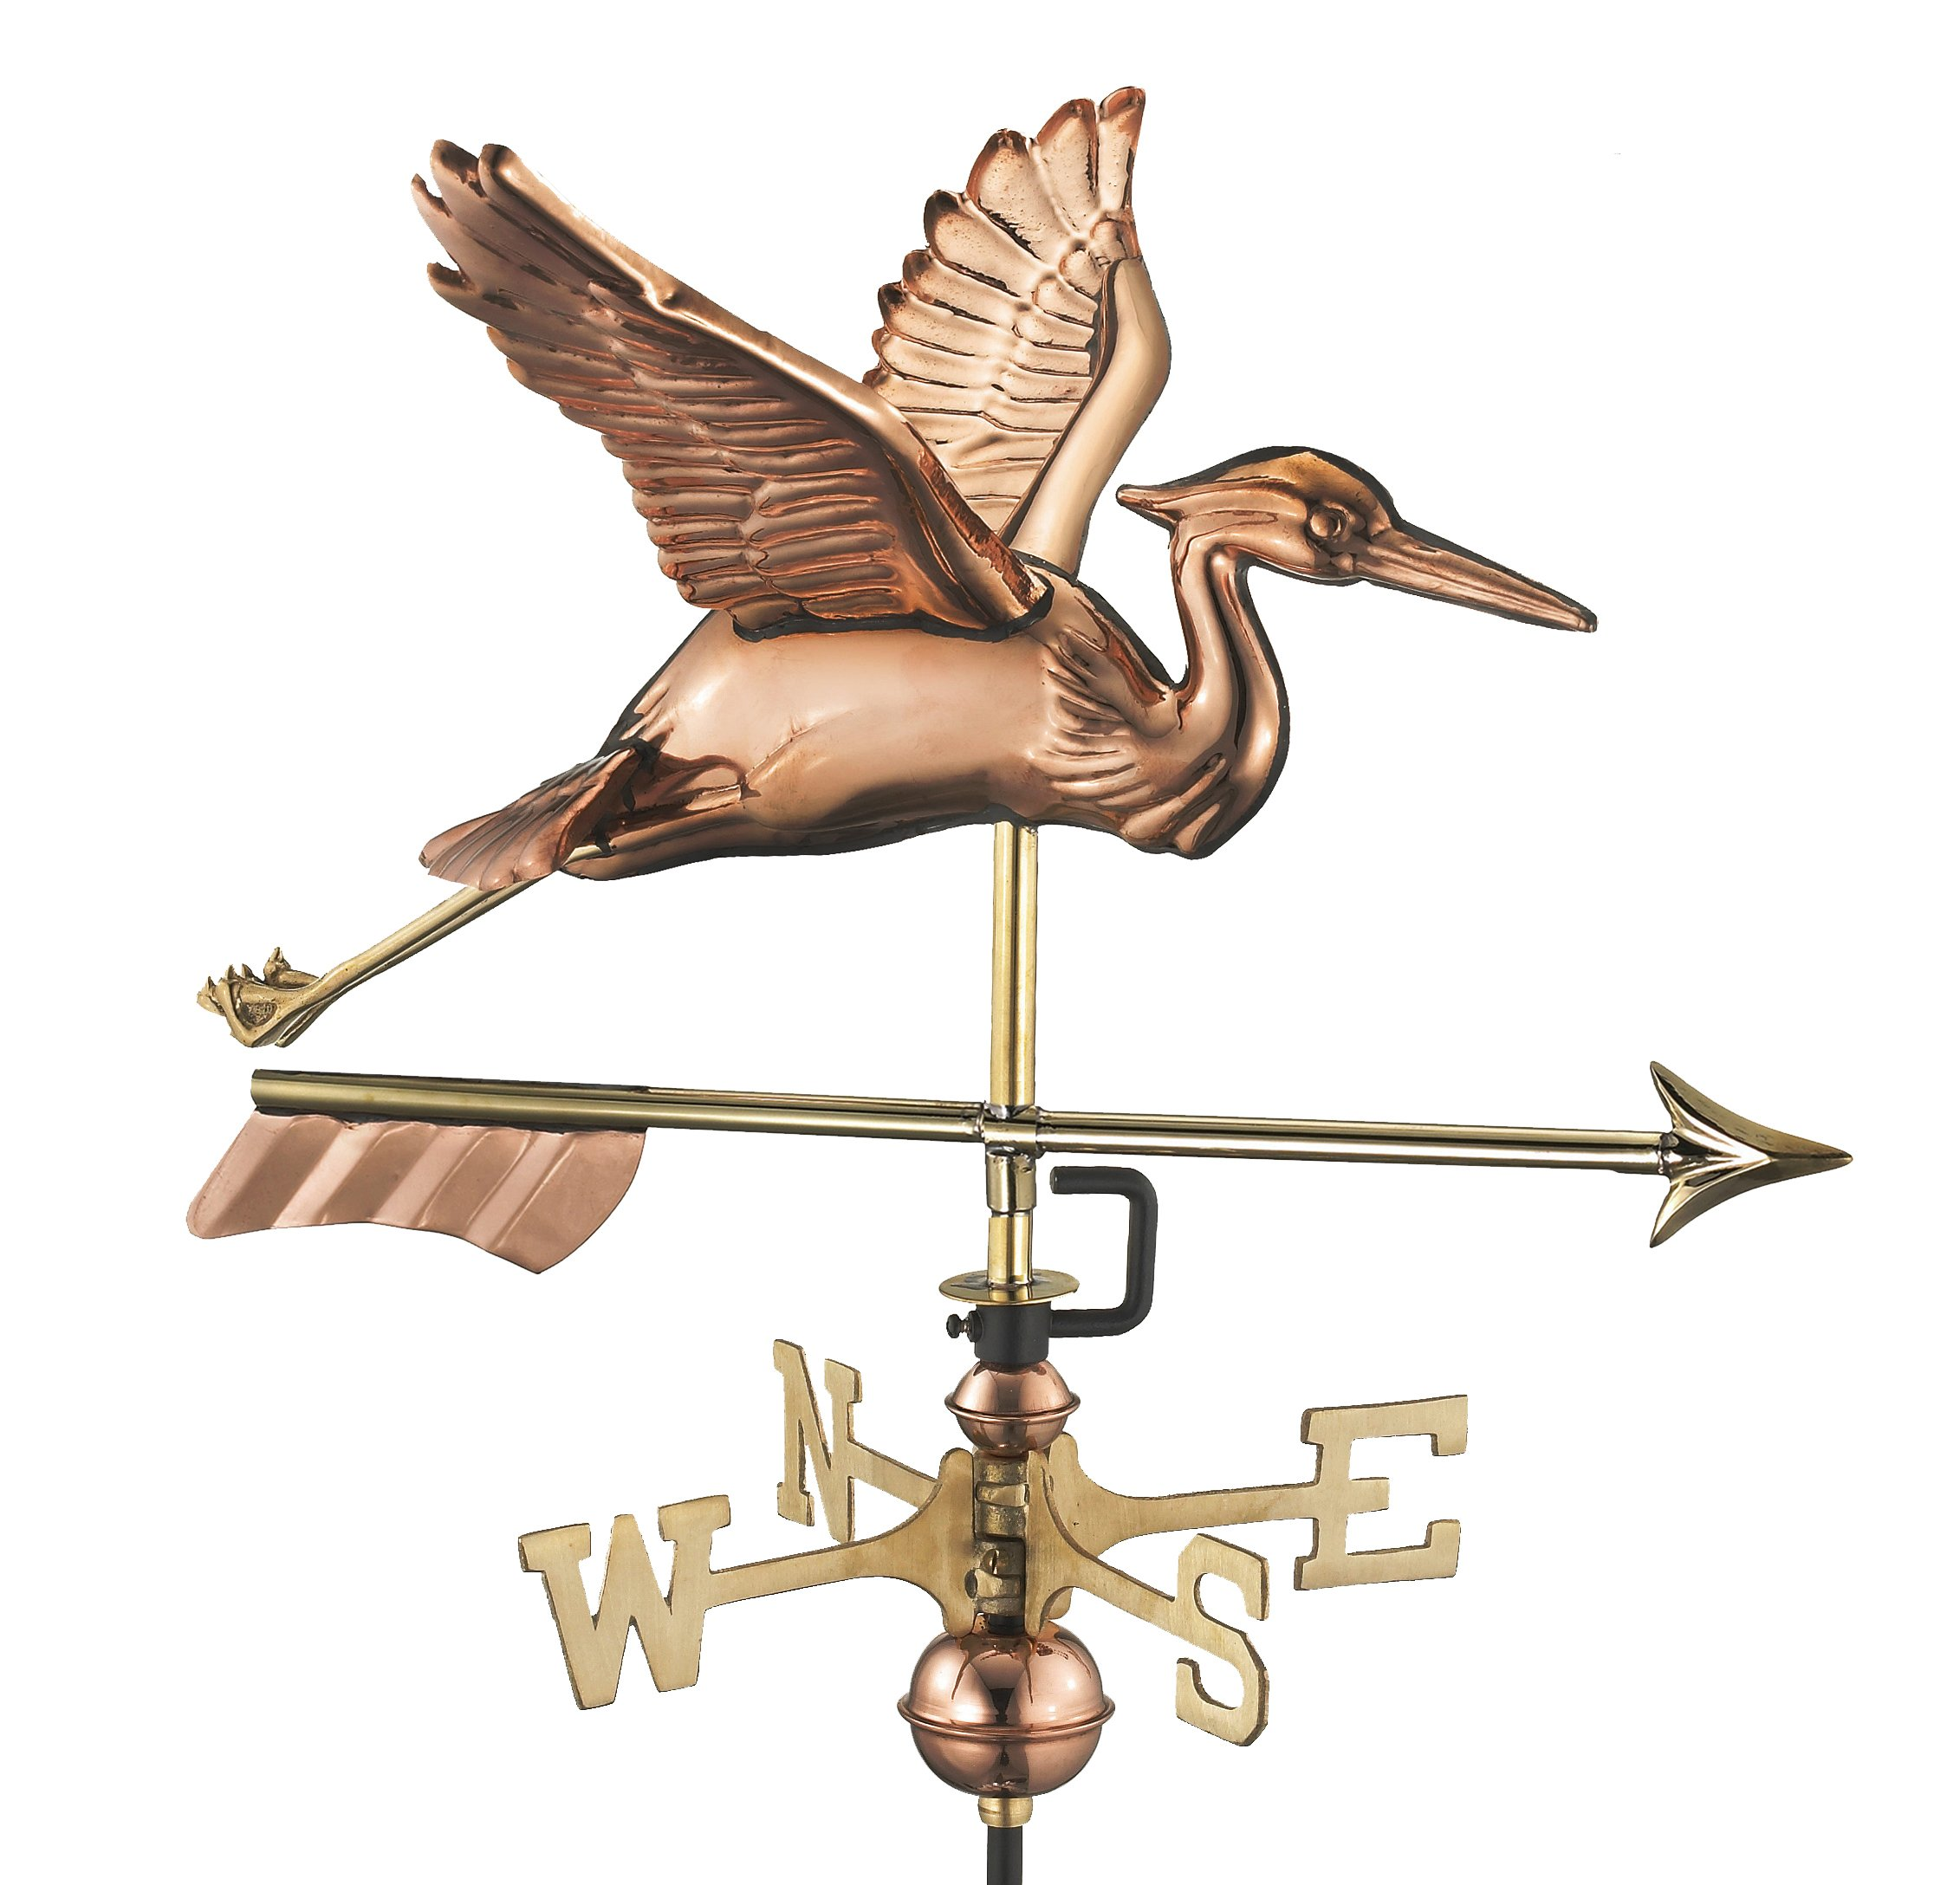 Good Directions Blue Heron with Arrow Garden Weathervane - Pure Copper with Garden Pole by Good Directions